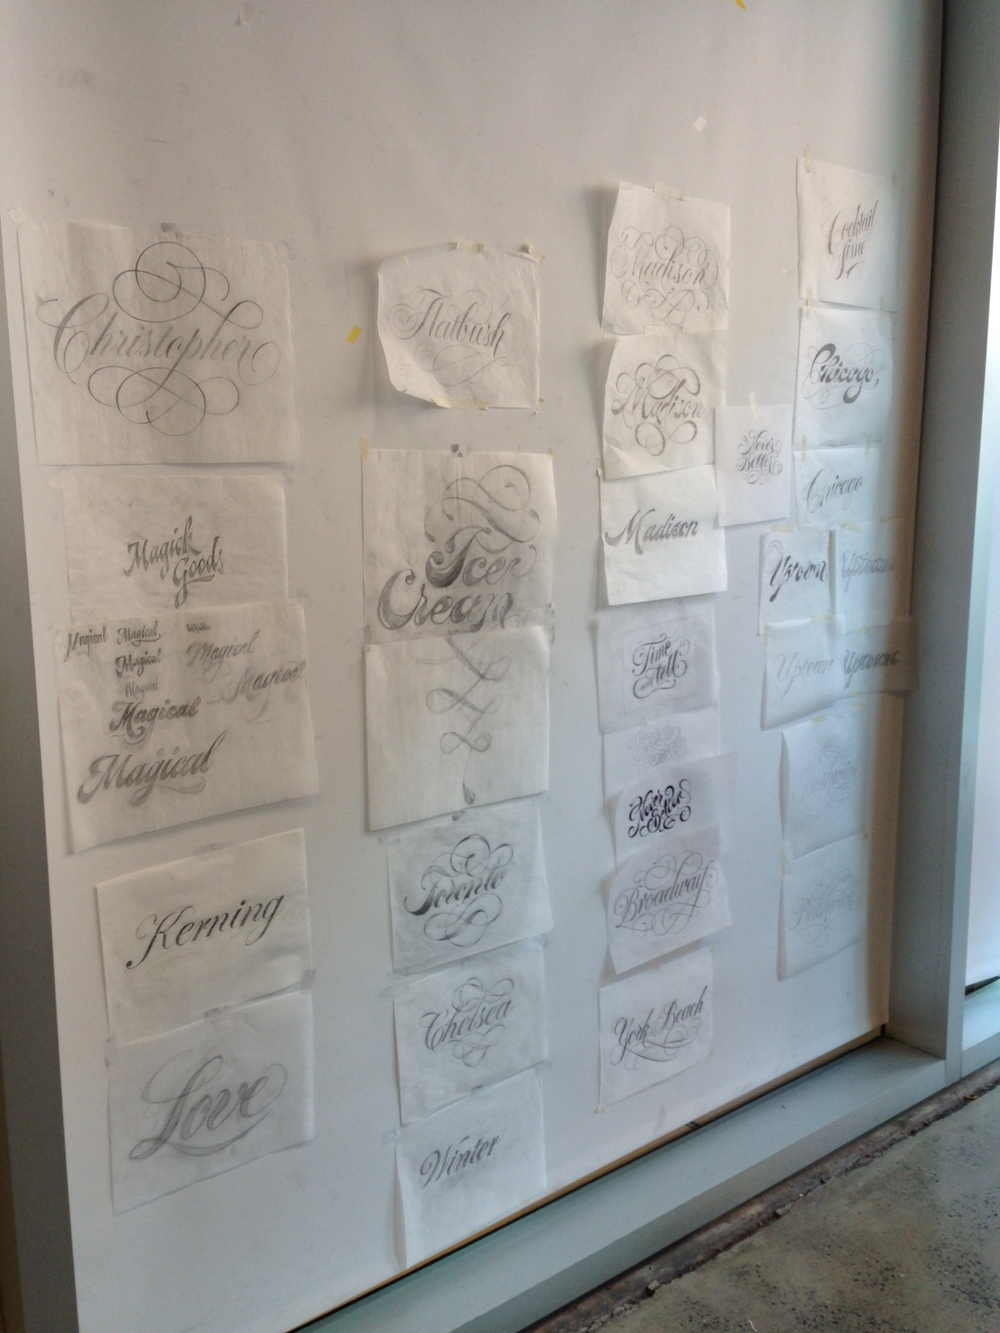 Just a small selection of the student's sketches posted on our final day.